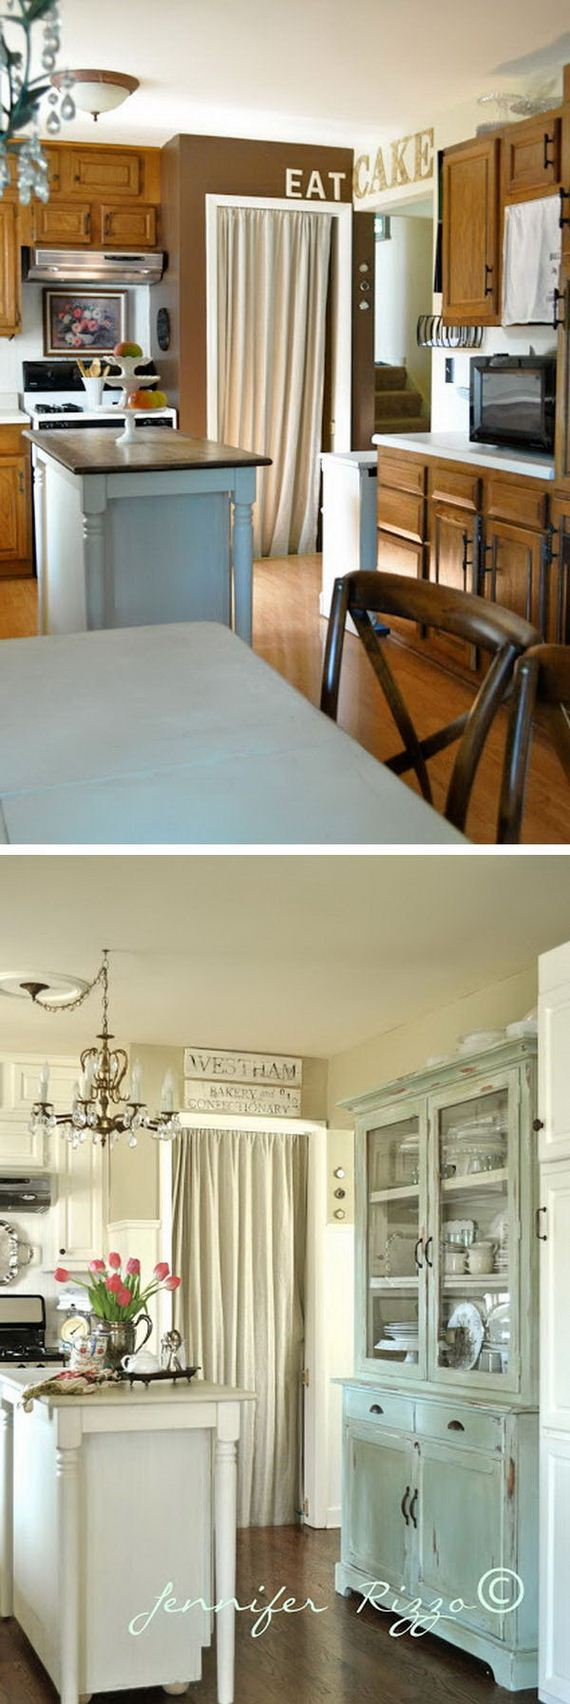 13-before-after-kitchen-makeover